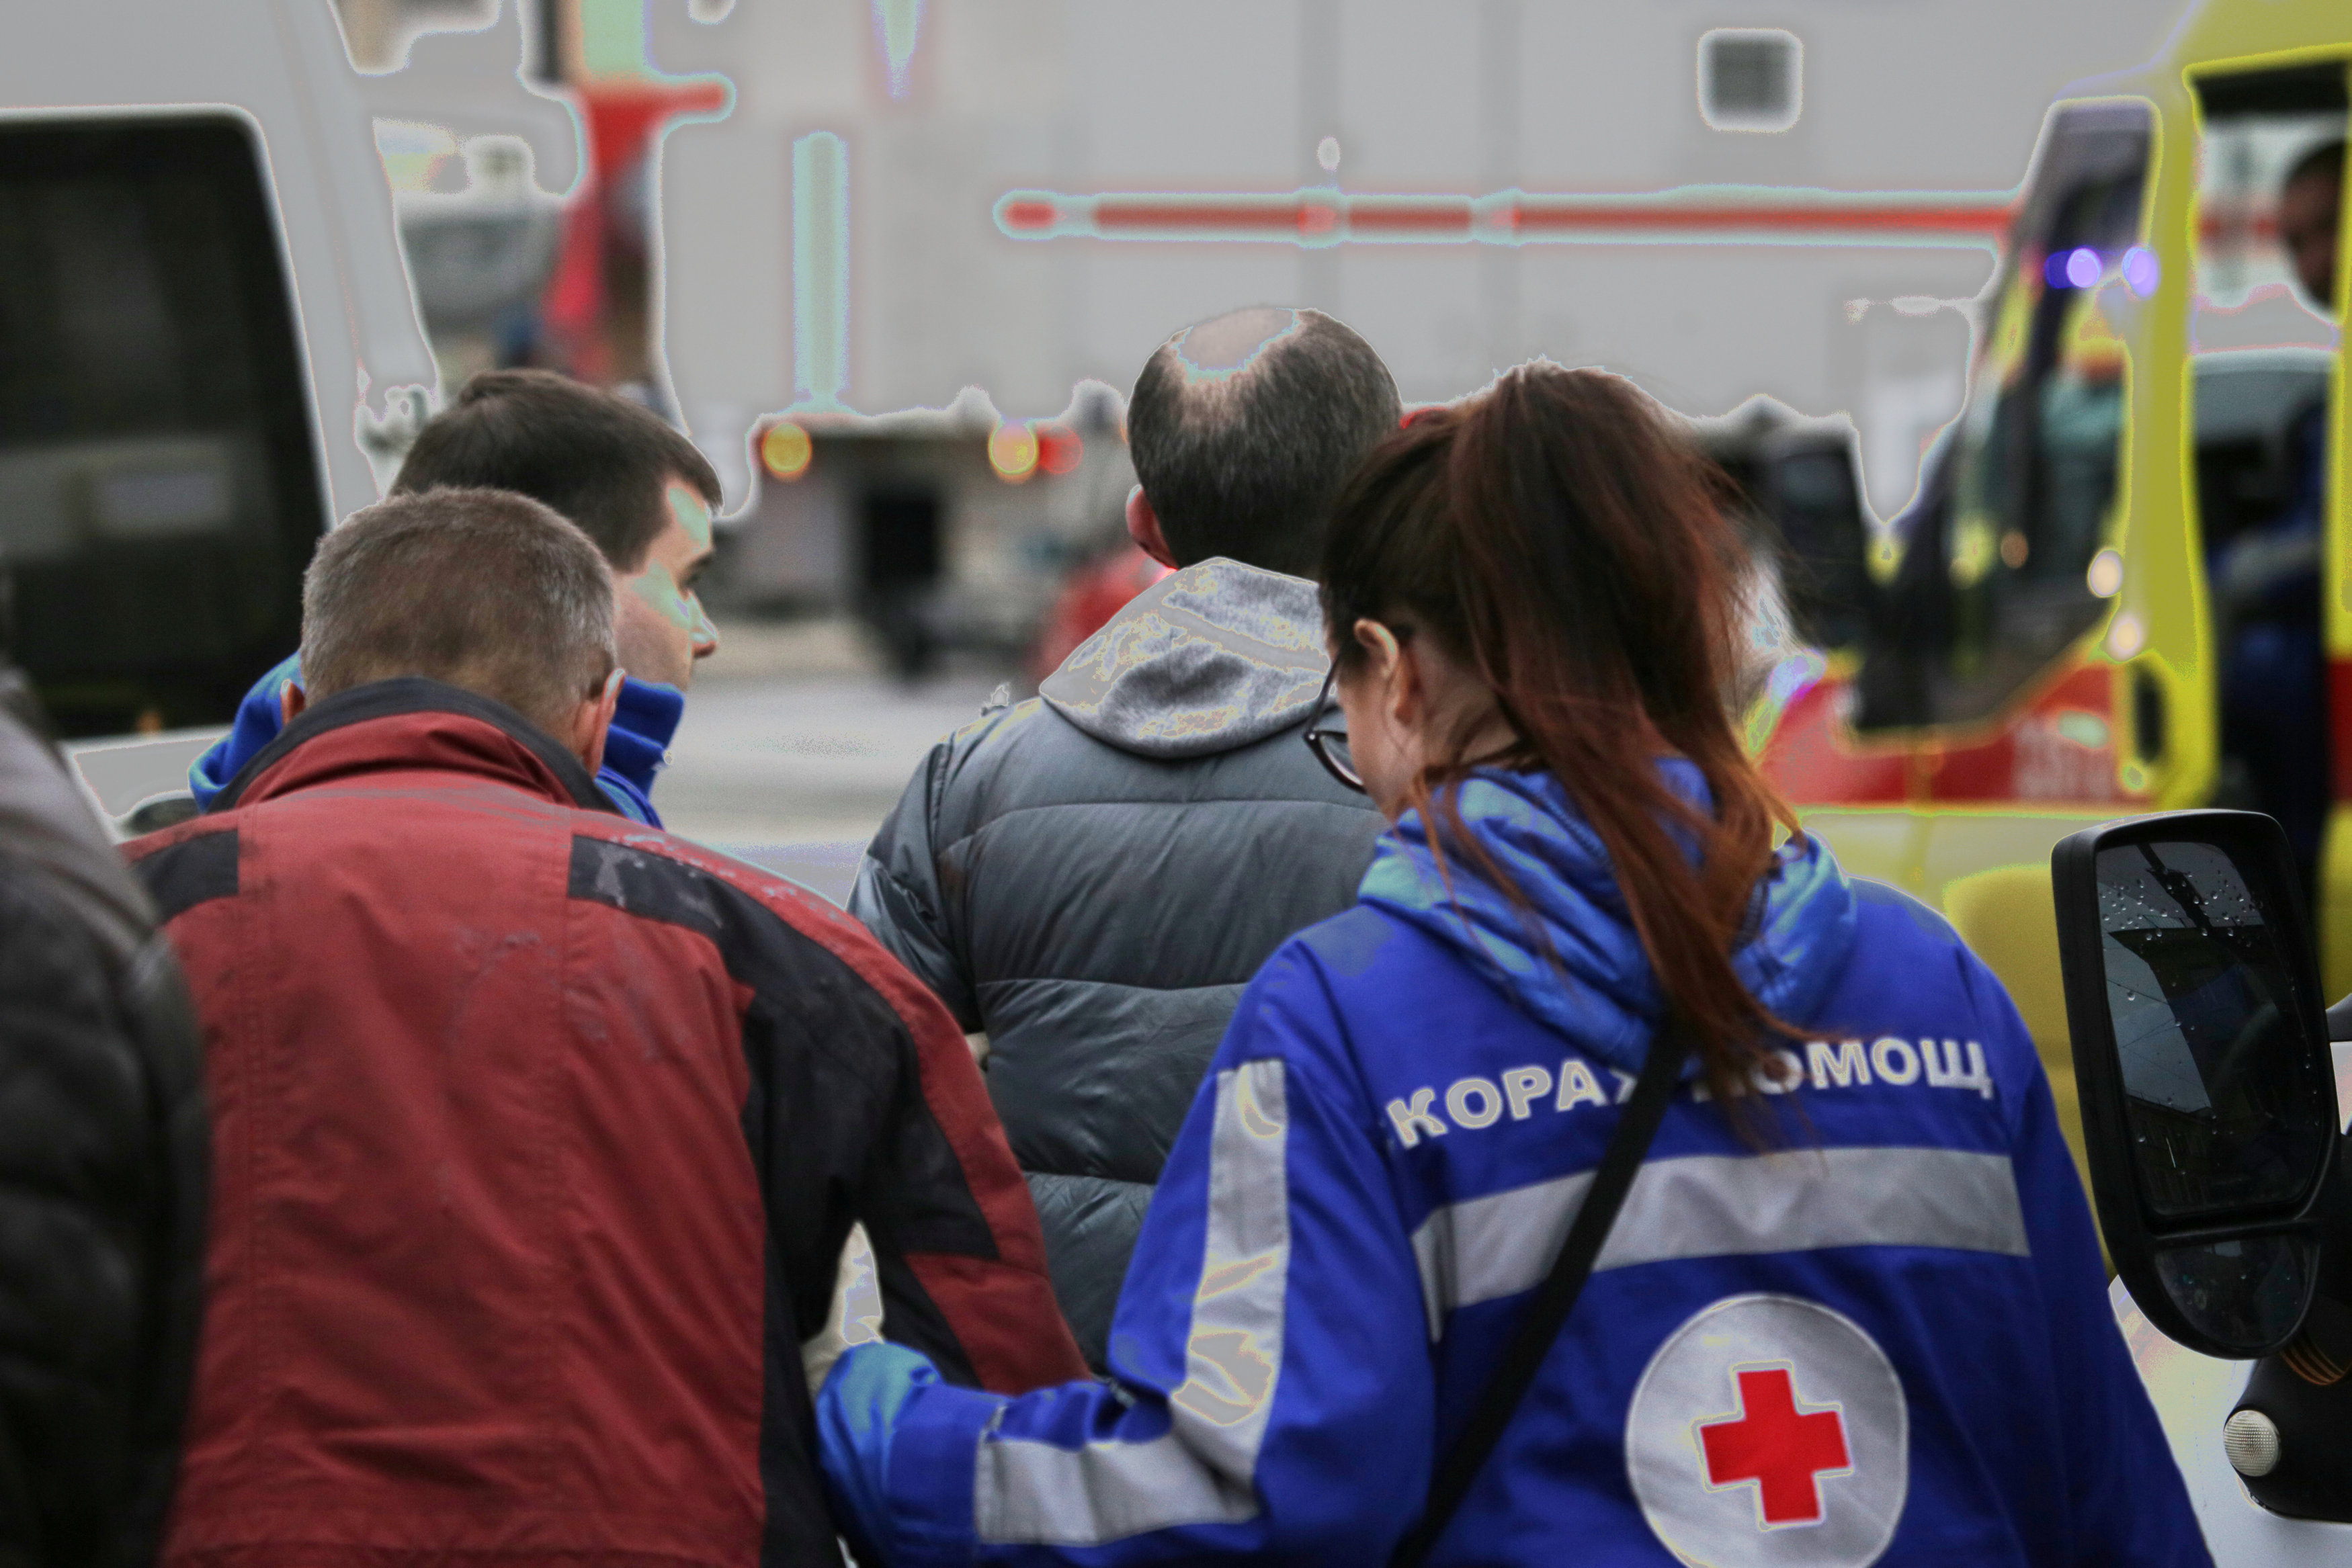 An injured person is helped by emergency services outside Sennaya Ploshchad metro station, following explosions in two train carriages at metro stations in St. Petersburg. (REUTERS/Anton Vaganov)